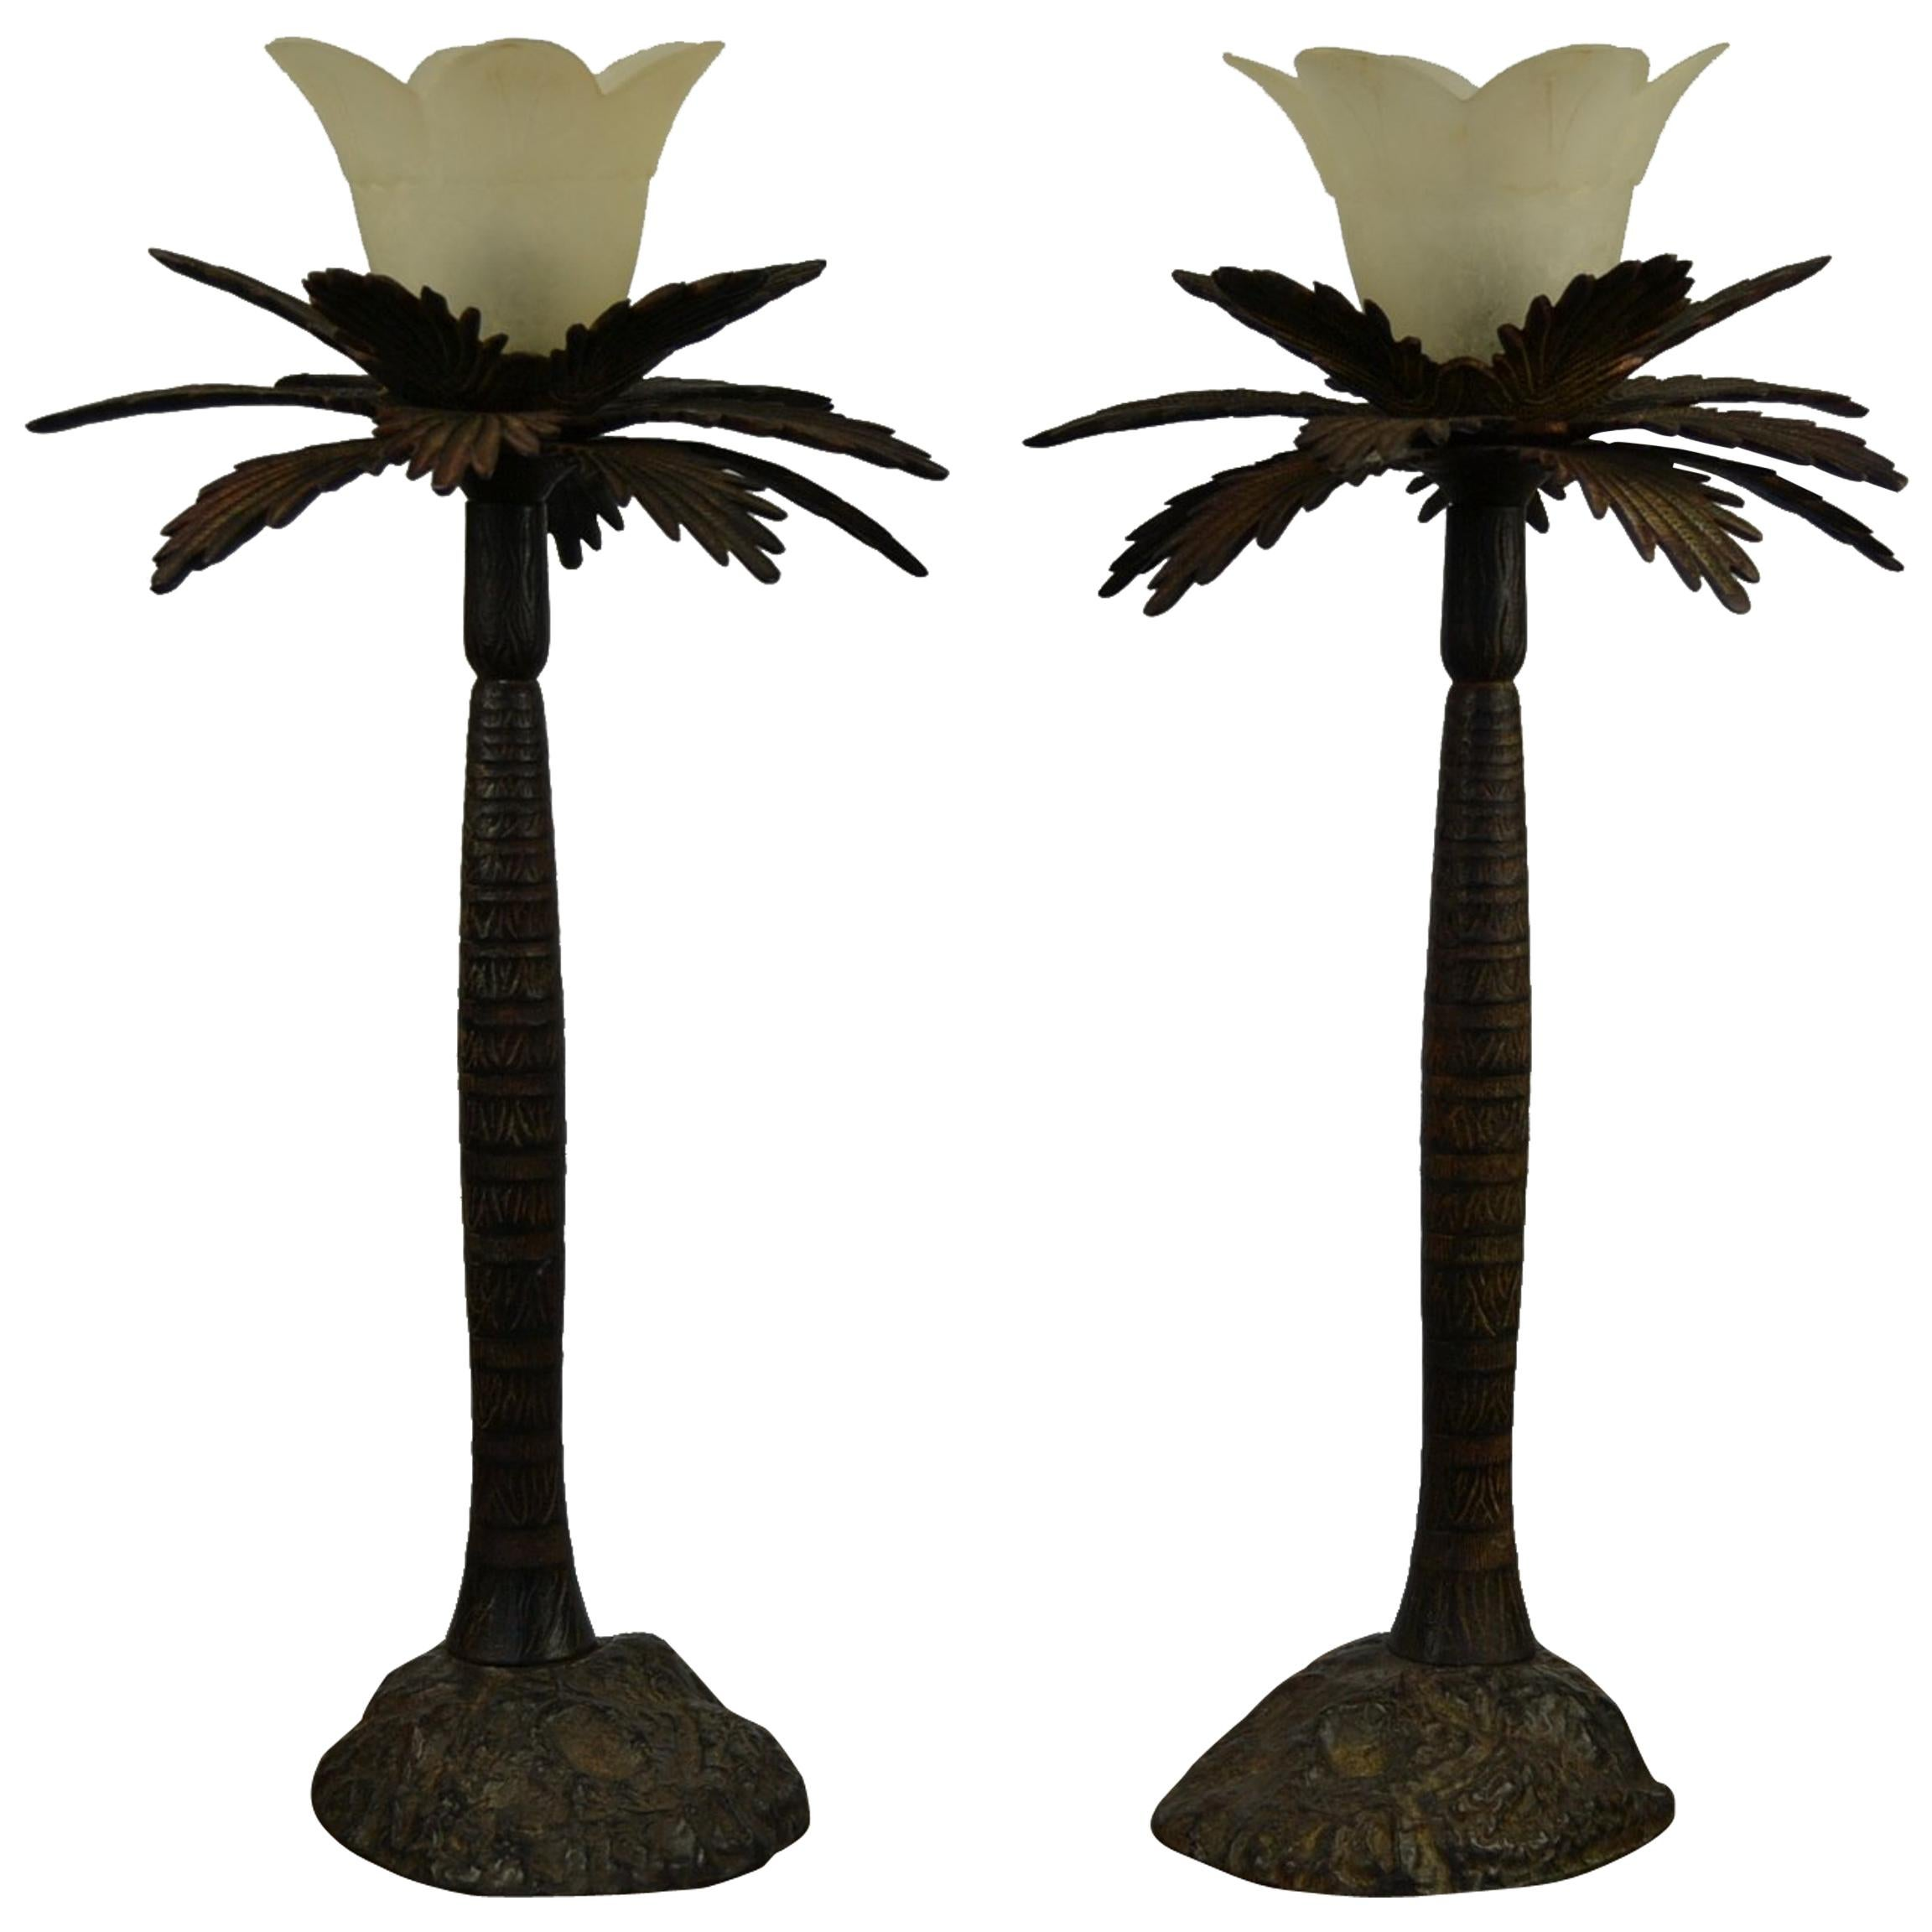 Vintage Pair Of Brutalist Palm Tree Table Lamps 1950s For At 1stdibs